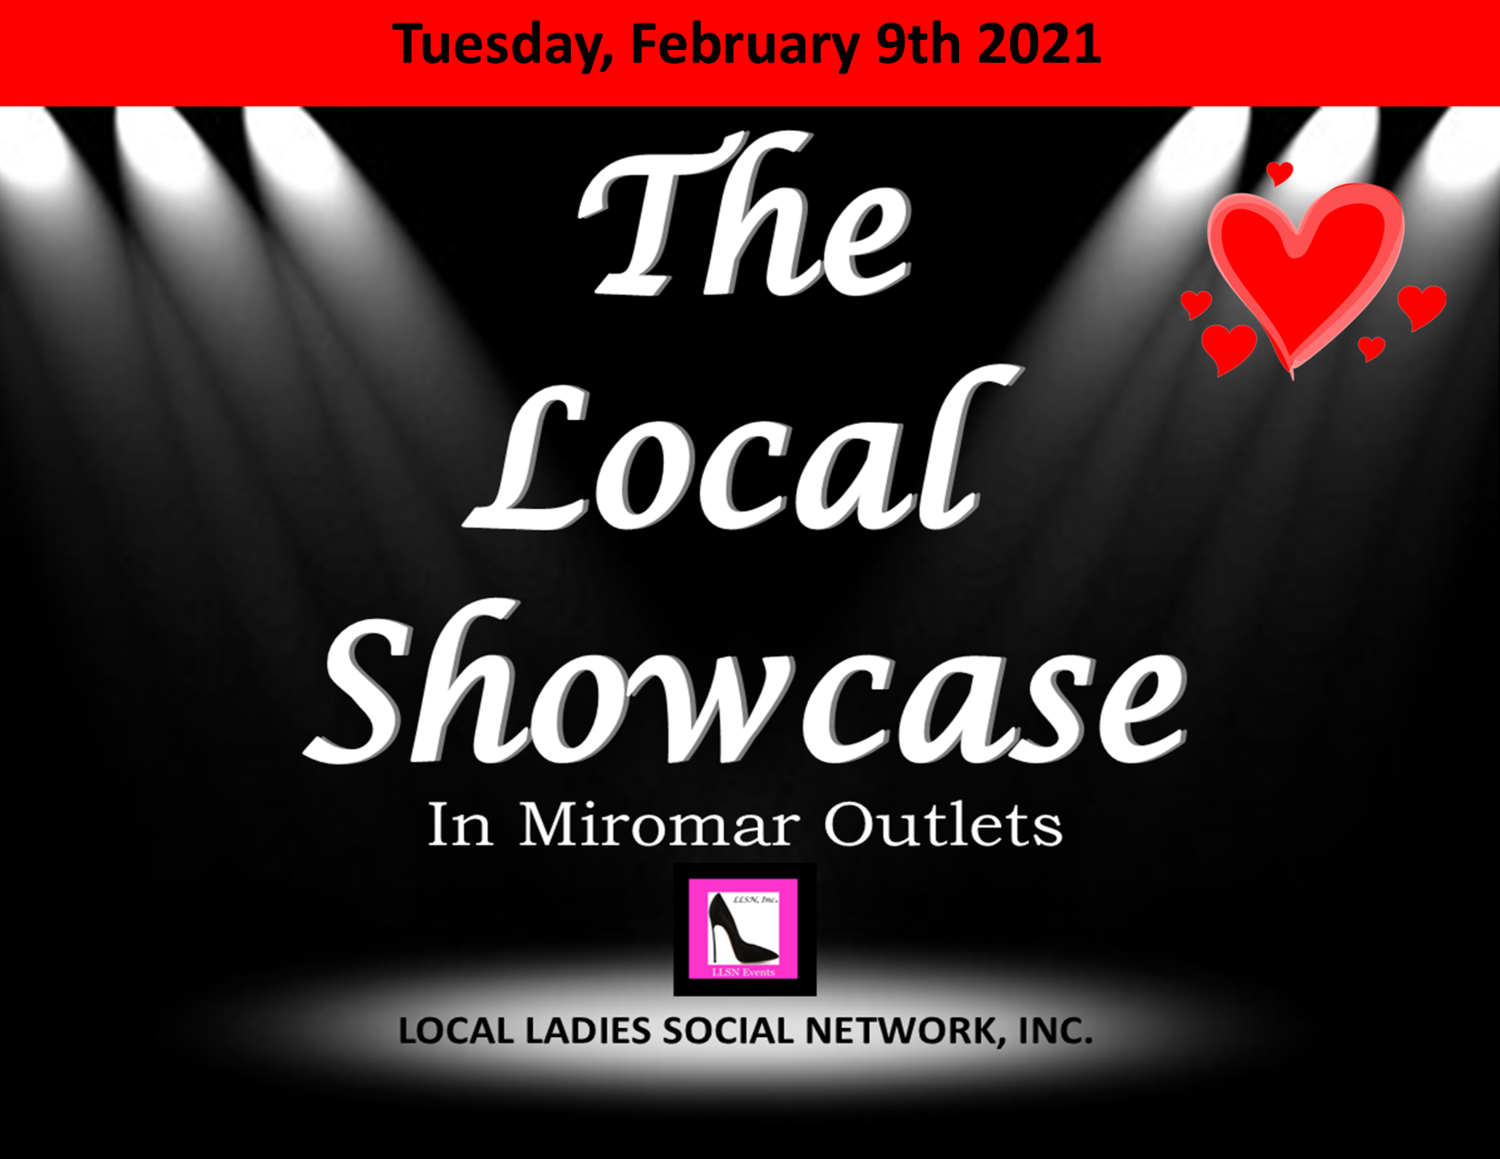 Tuesday, February 9th 11am-7pm.